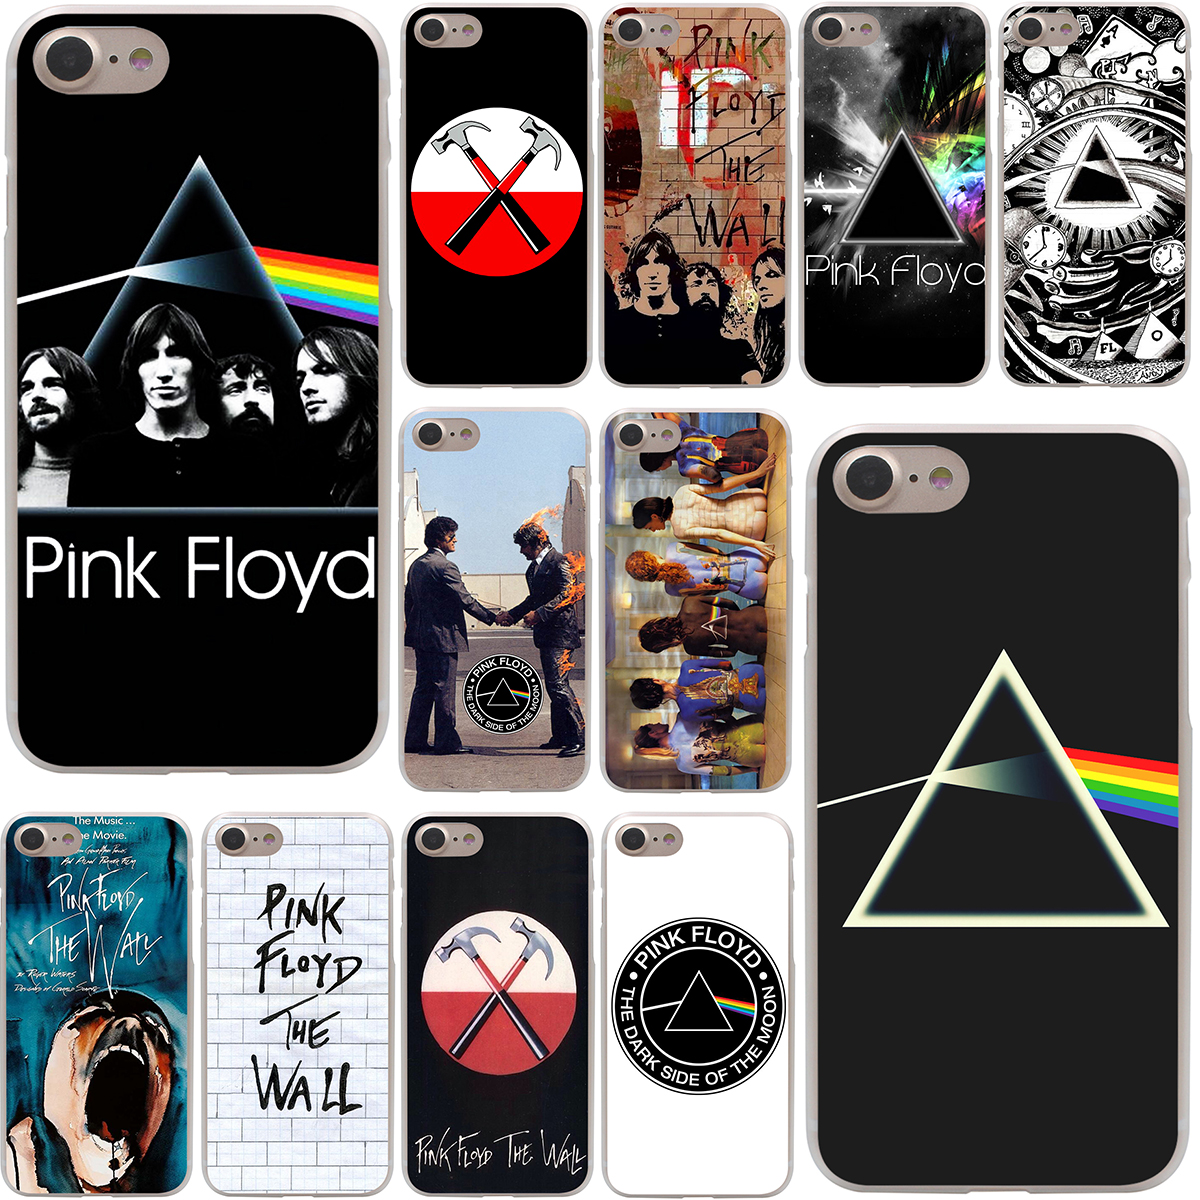 pink floyd the wall Hard Case Transparent for iPhone 7 7 Plus 6 6s Plus 5 5S SE 5C 4 4S